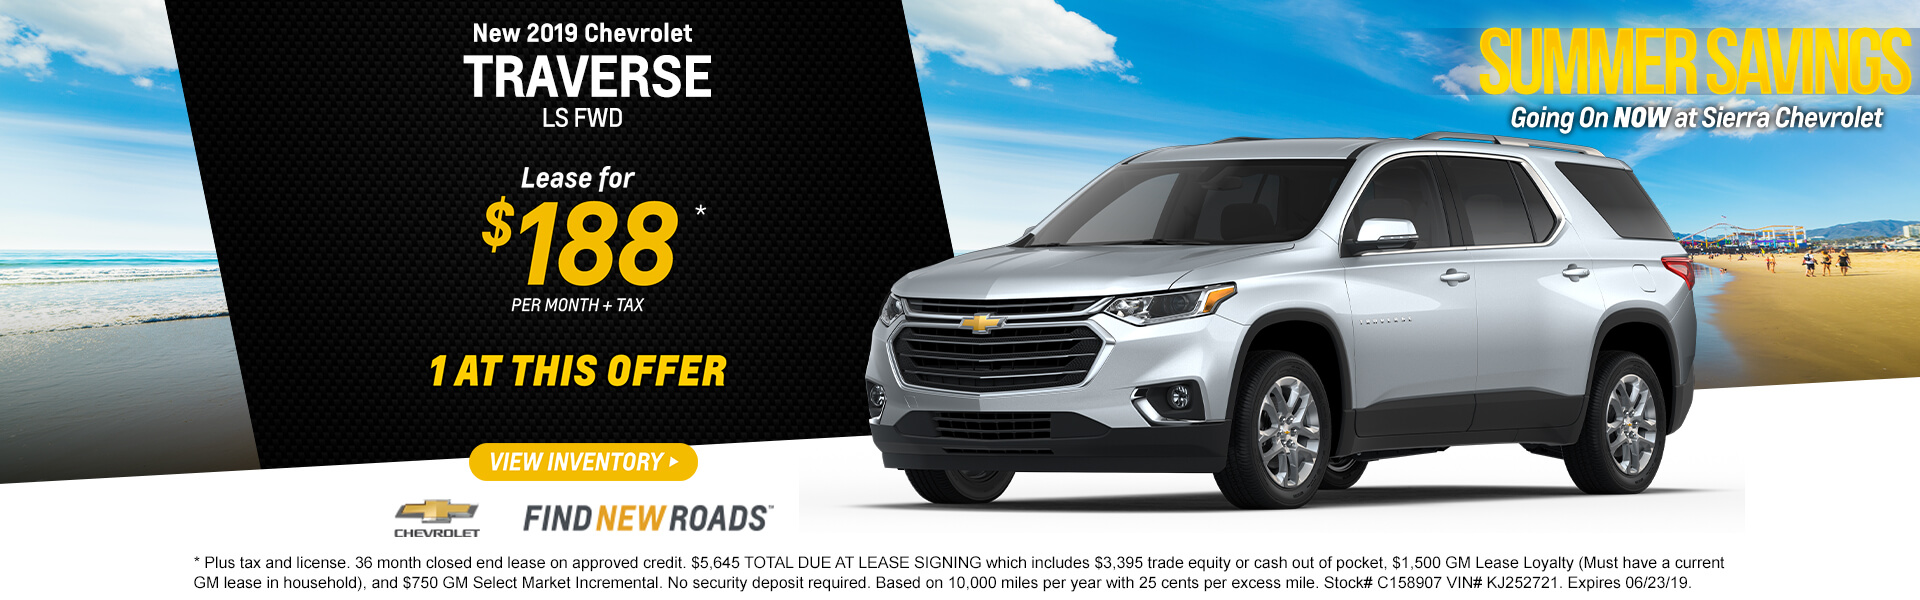 2019 Chevrolet Traverse LS FWD  Lease for $188*  per month + tax   1 at this offer  * Plus tax and license. 36 month closed end lease on approved credit. $5,645 TOTAL DUE AT LEASE SIGNING which includes $3,395 trade equity or cash out of pocket, $1,500 GM Lease Loyalty (Must have a current GM lease in household), and $750 GM Select Market Incremental. No security deposit required. Based on 10,000 miles per year with 25 cents per excess mile. Stock# C158907 VIN# KJ252721. Expires 06/23/19.